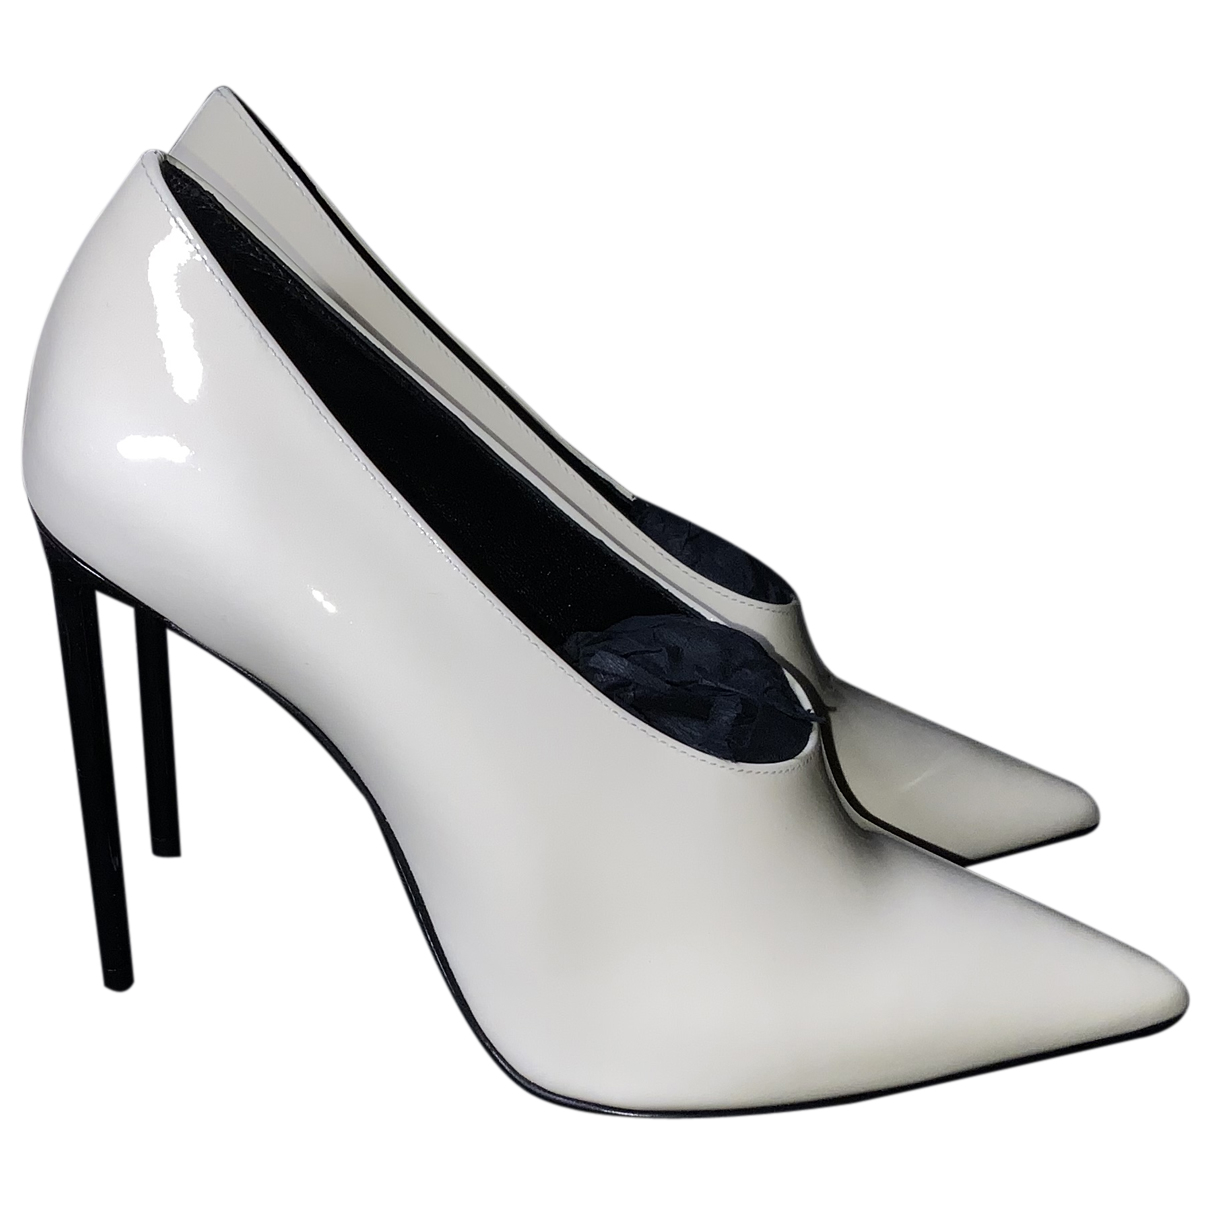 Saint Laurent N White Patent leather Heels for Women 36 IT